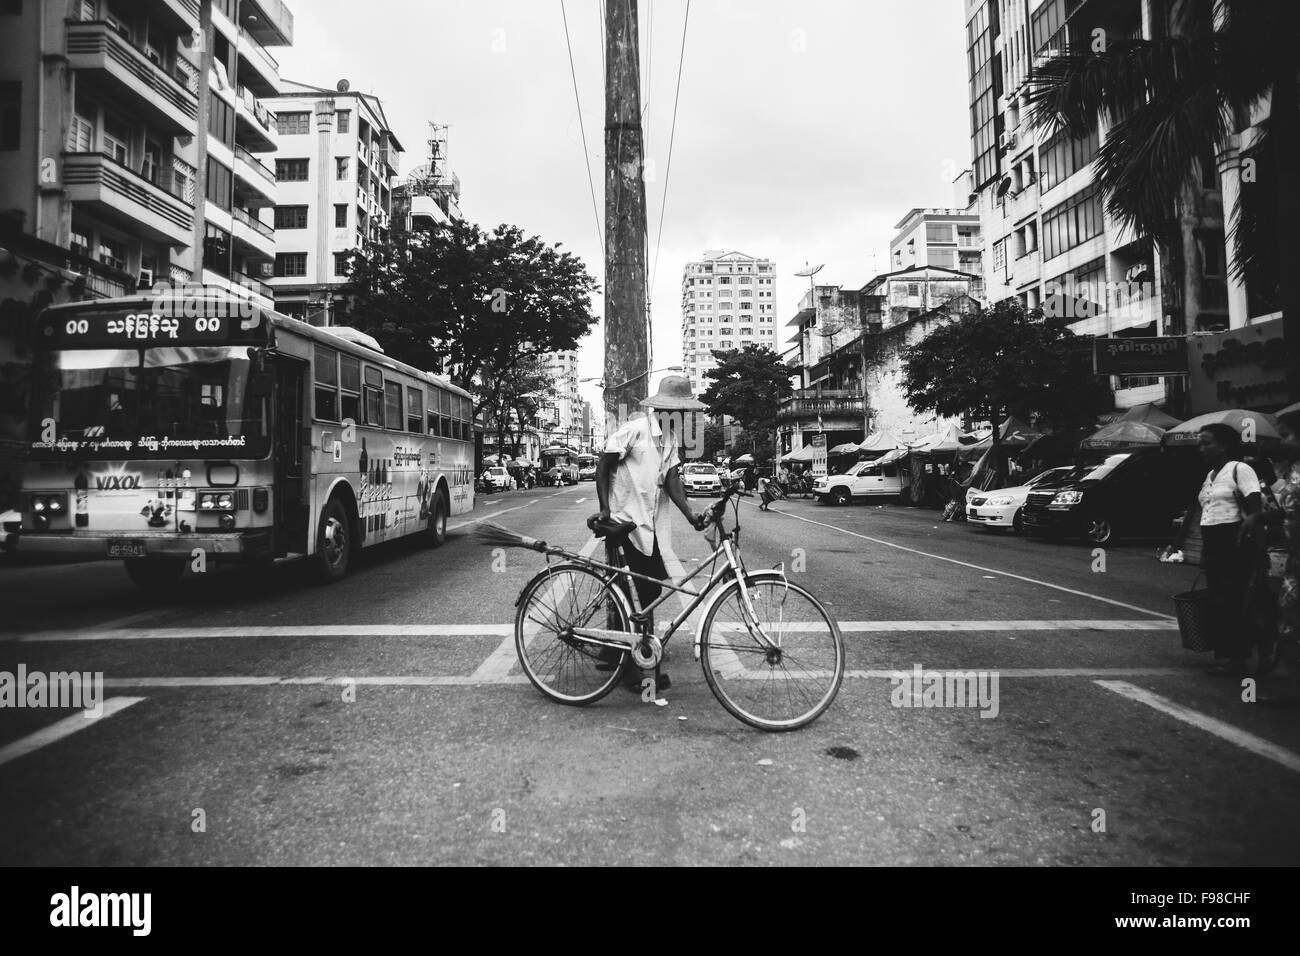 a man pushes his bicycle across a busy street in yangon - Stock Image